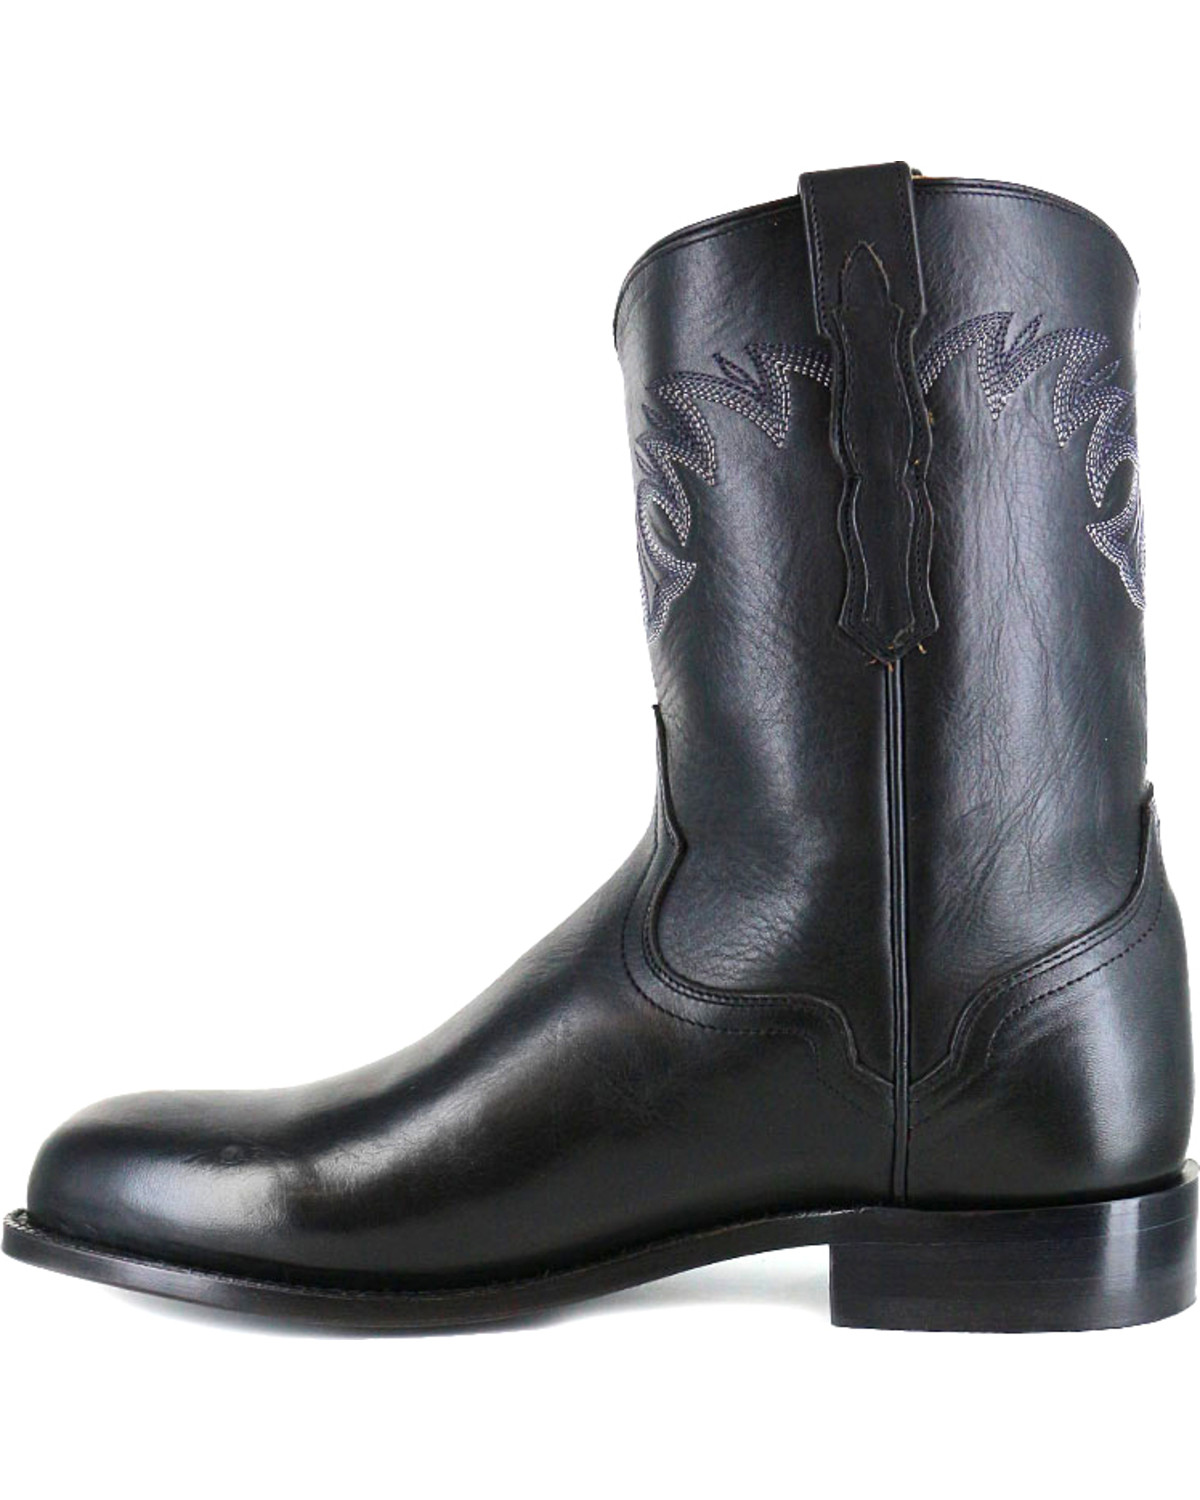 El Dorado Men's Embroidered Western Boots